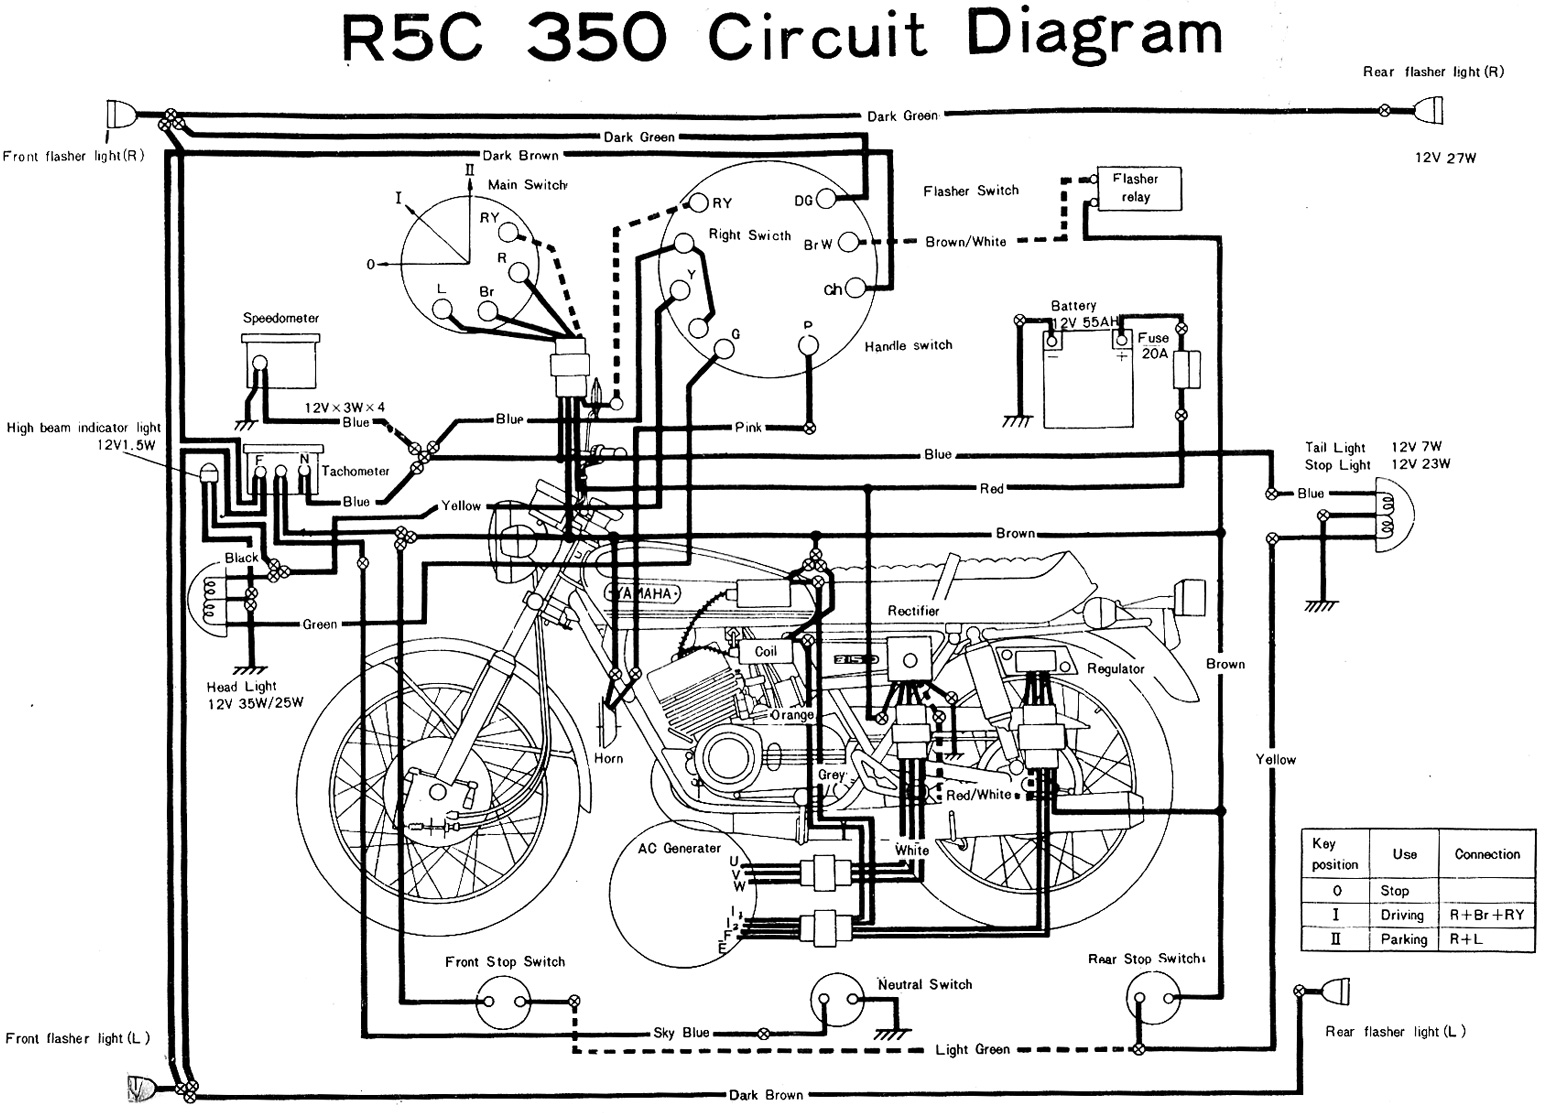 Xs Wiring Diagram moreover Ht Wiring as well A B Ab A Ed A E Aa together with Yz Kicker Spring moreover Suzuki Gn. on electrical wiring diagrams for yamaha motorcycles